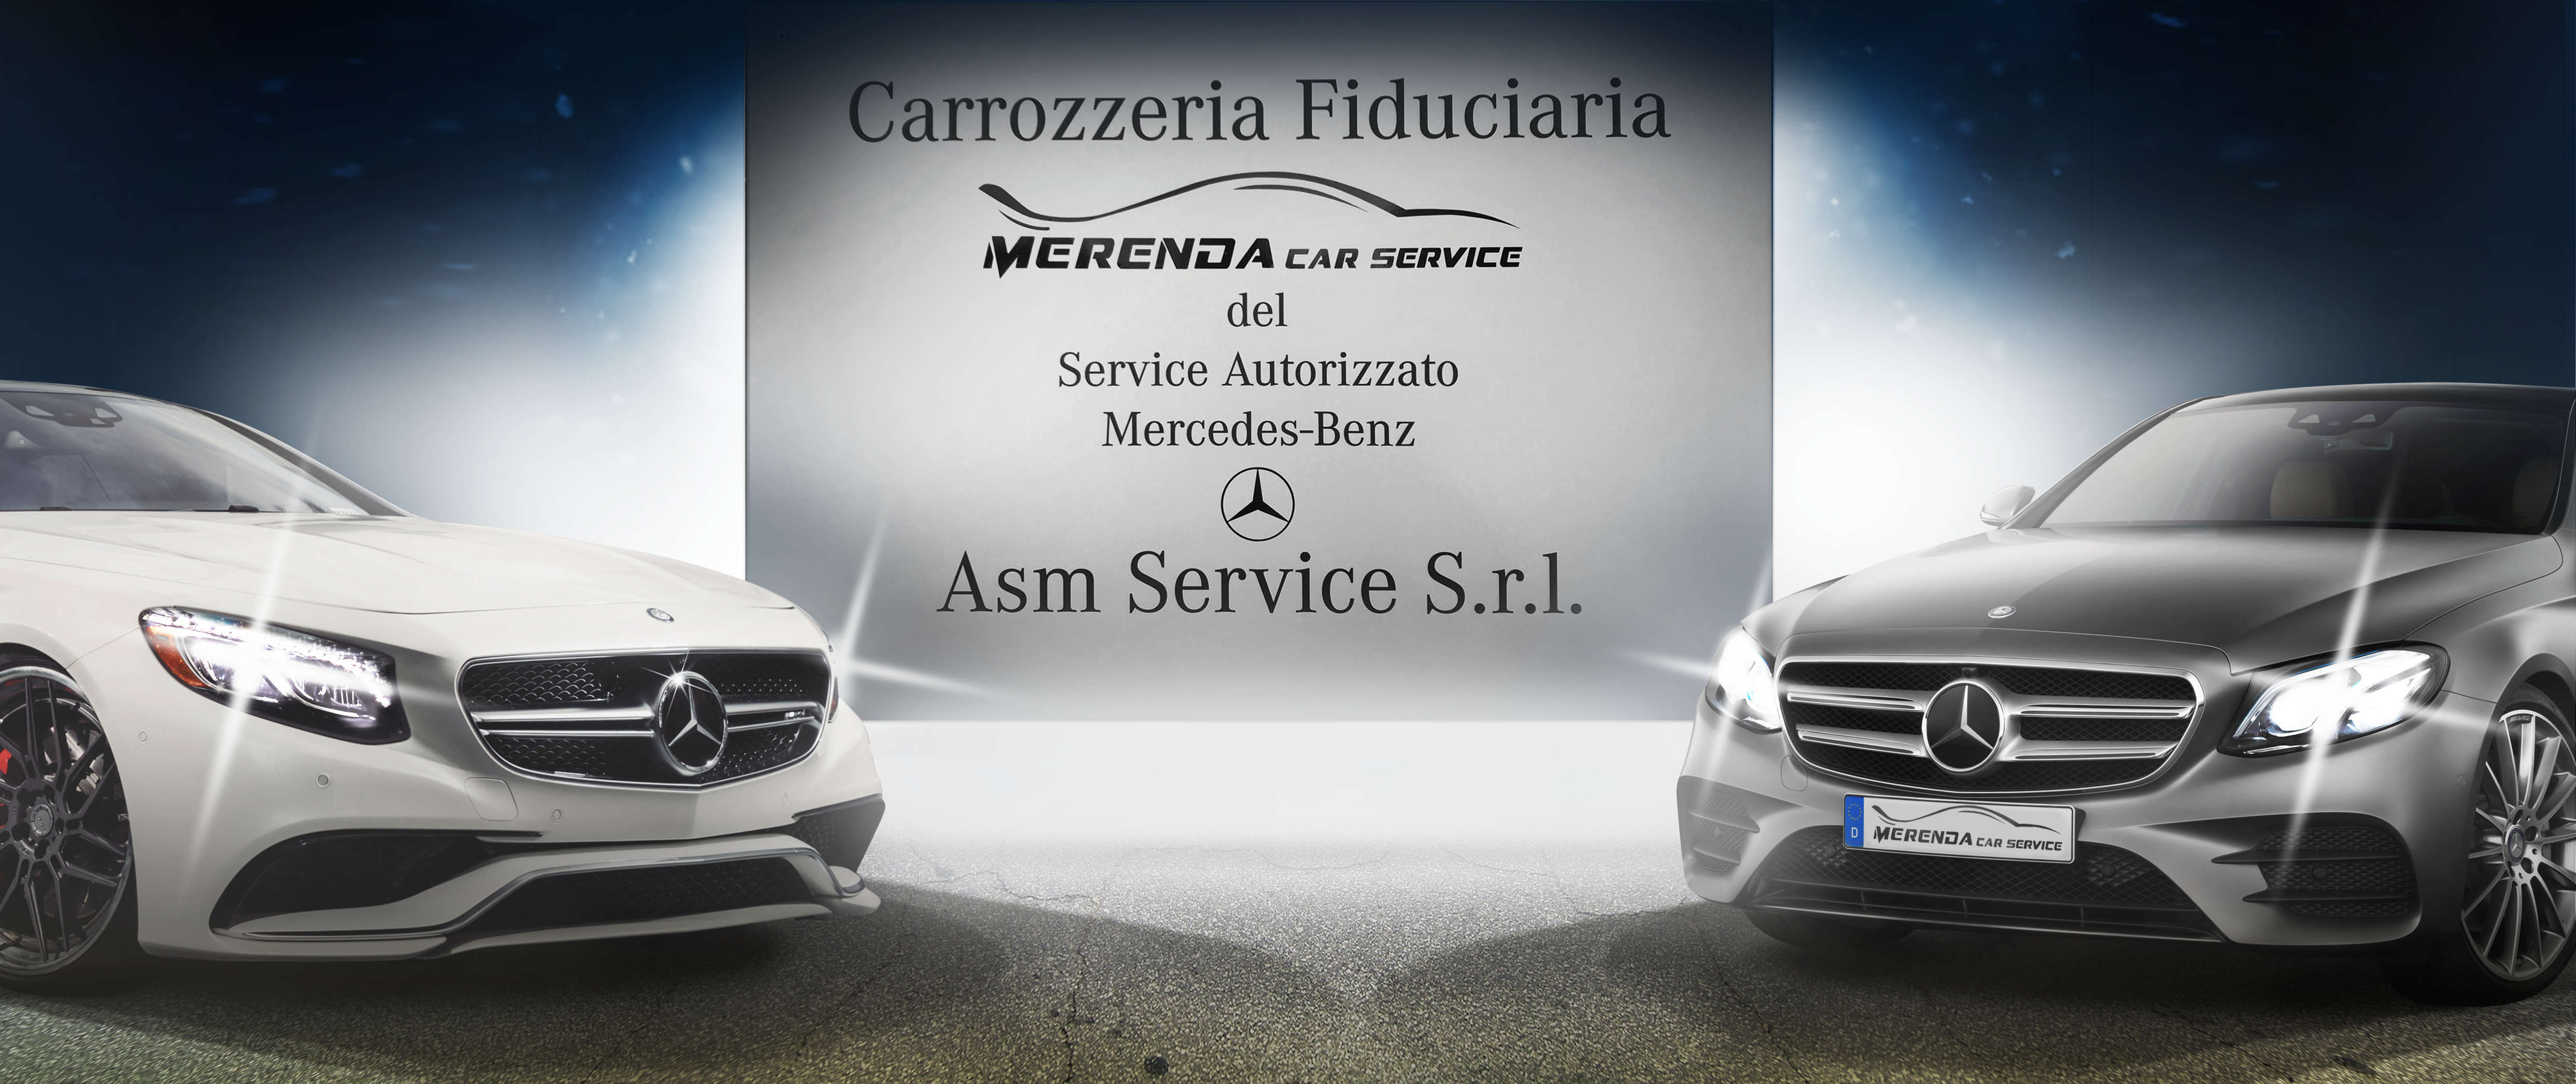 Carrozzeria Fiduciaria Mercedes